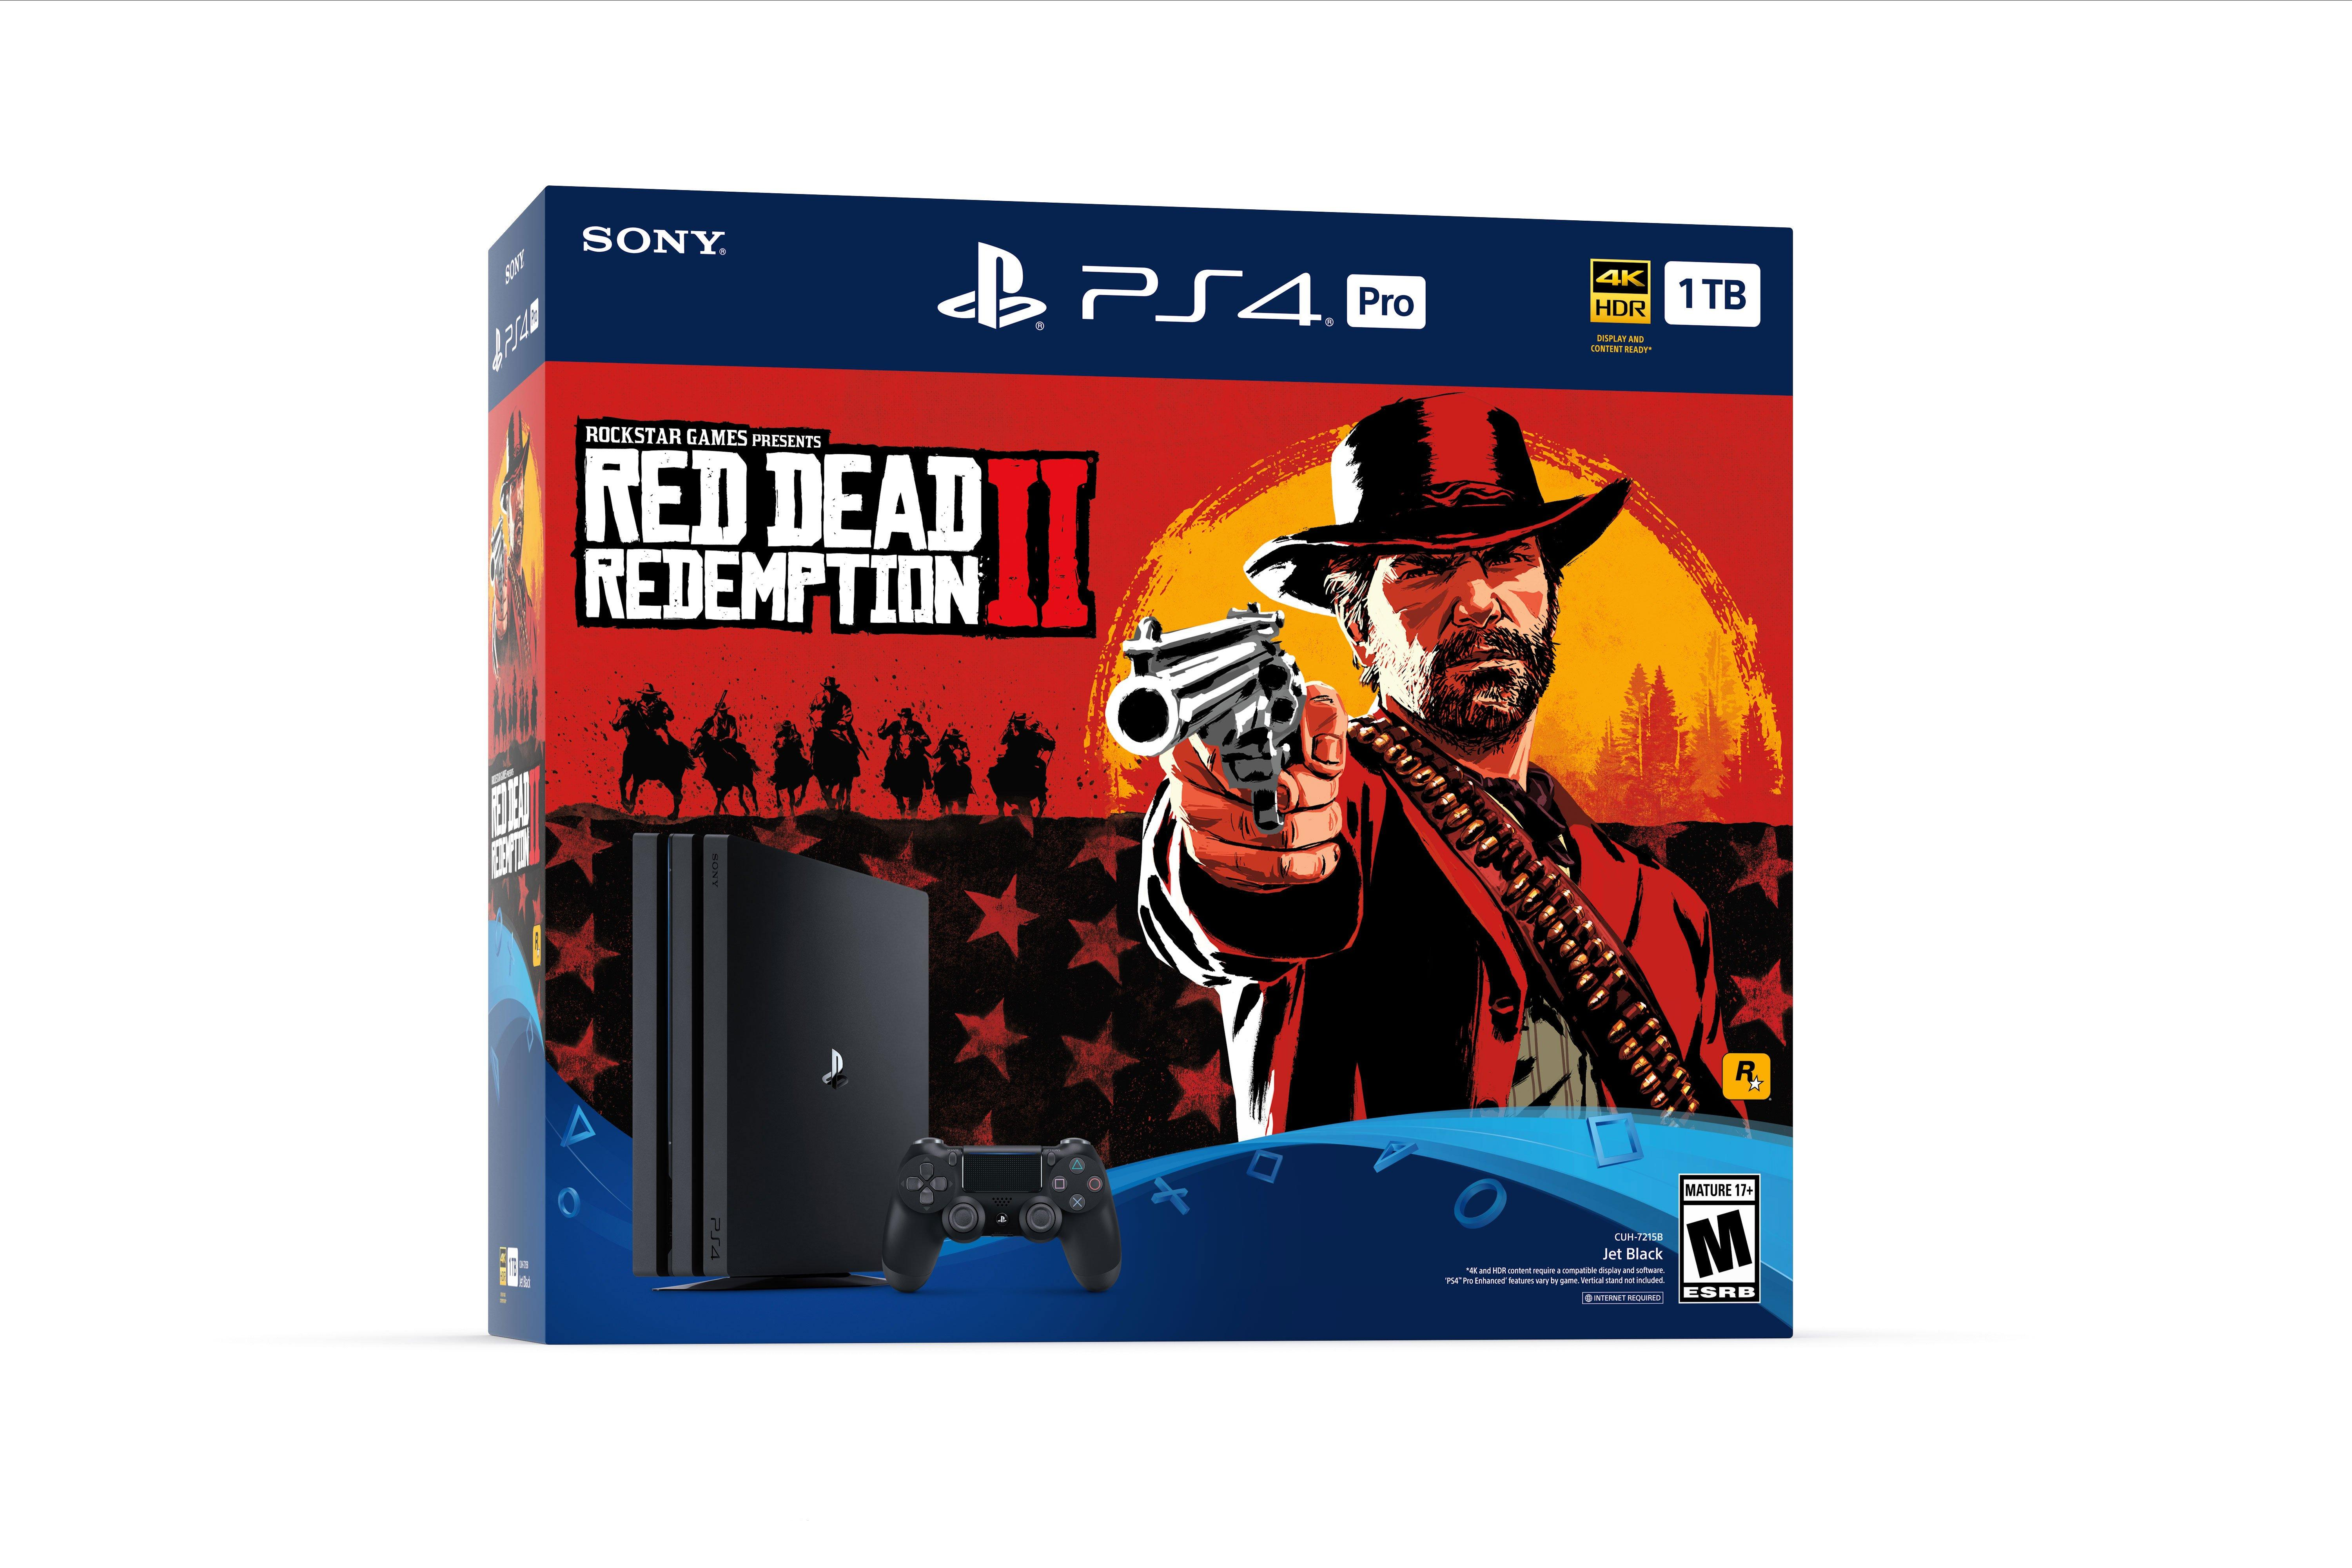 PlayStation 4 1TB Pro - Red Dead Redemption 2 System Bundle | PlayStation 4  | GameStop